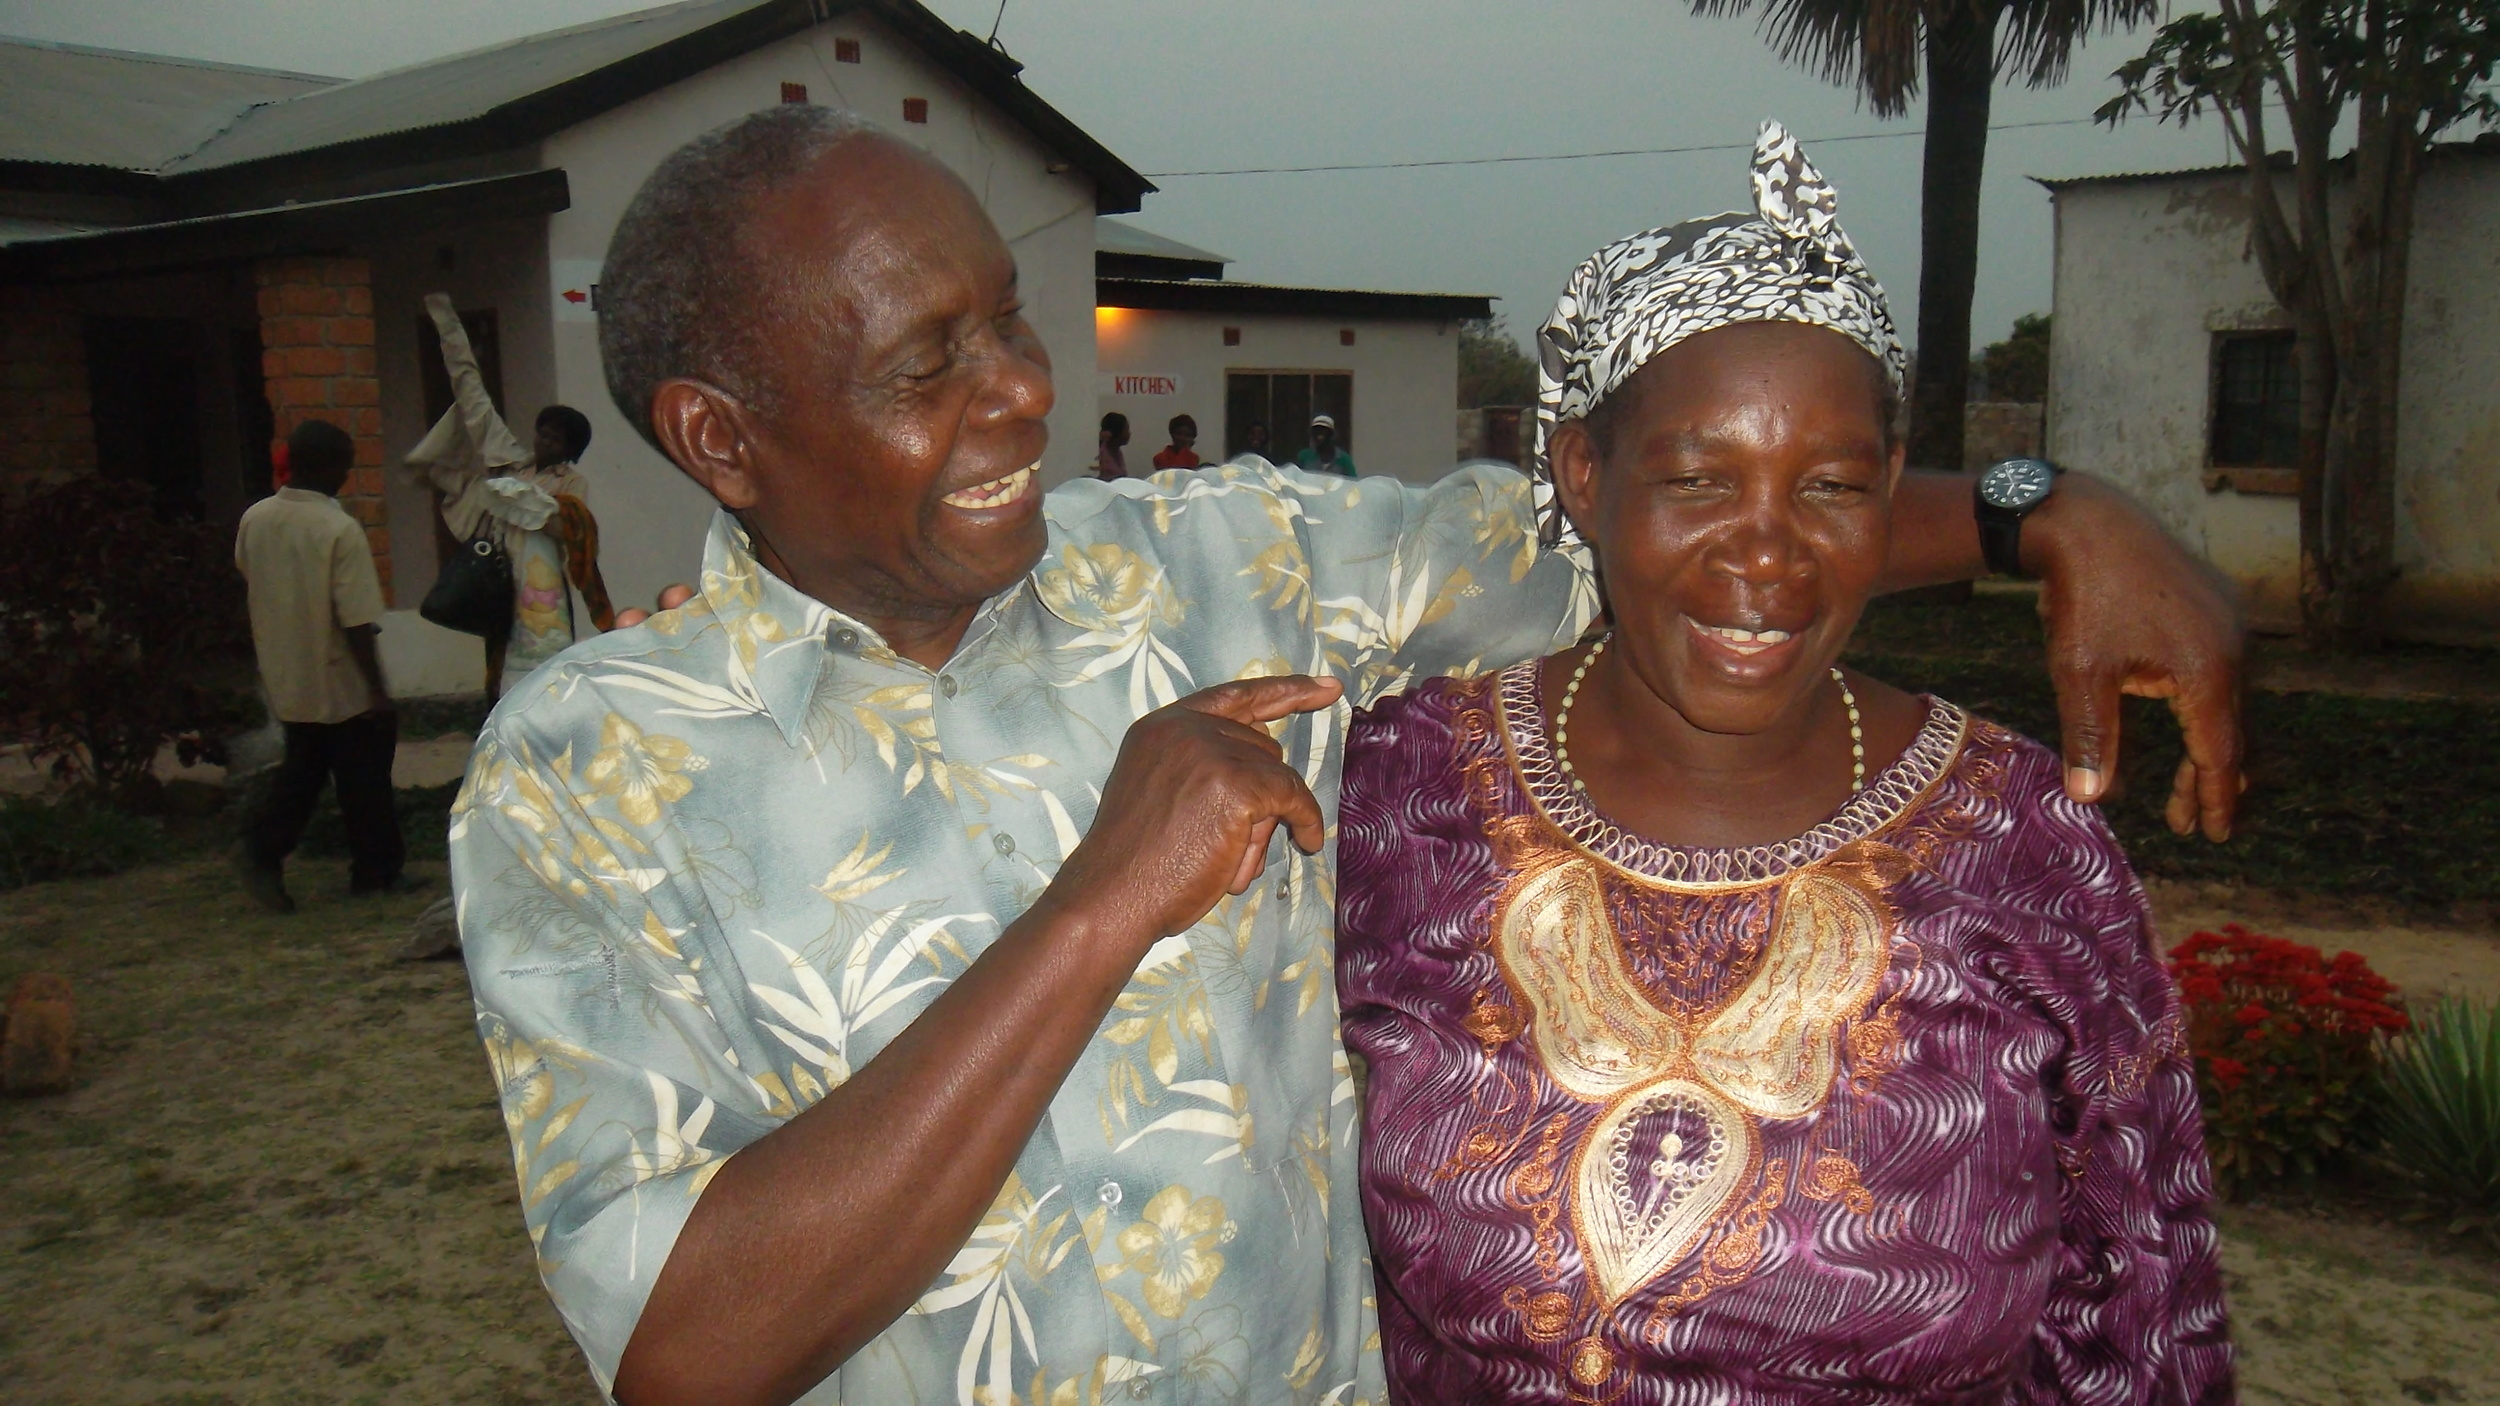 This is where the program leads most of our couples -  smiles...